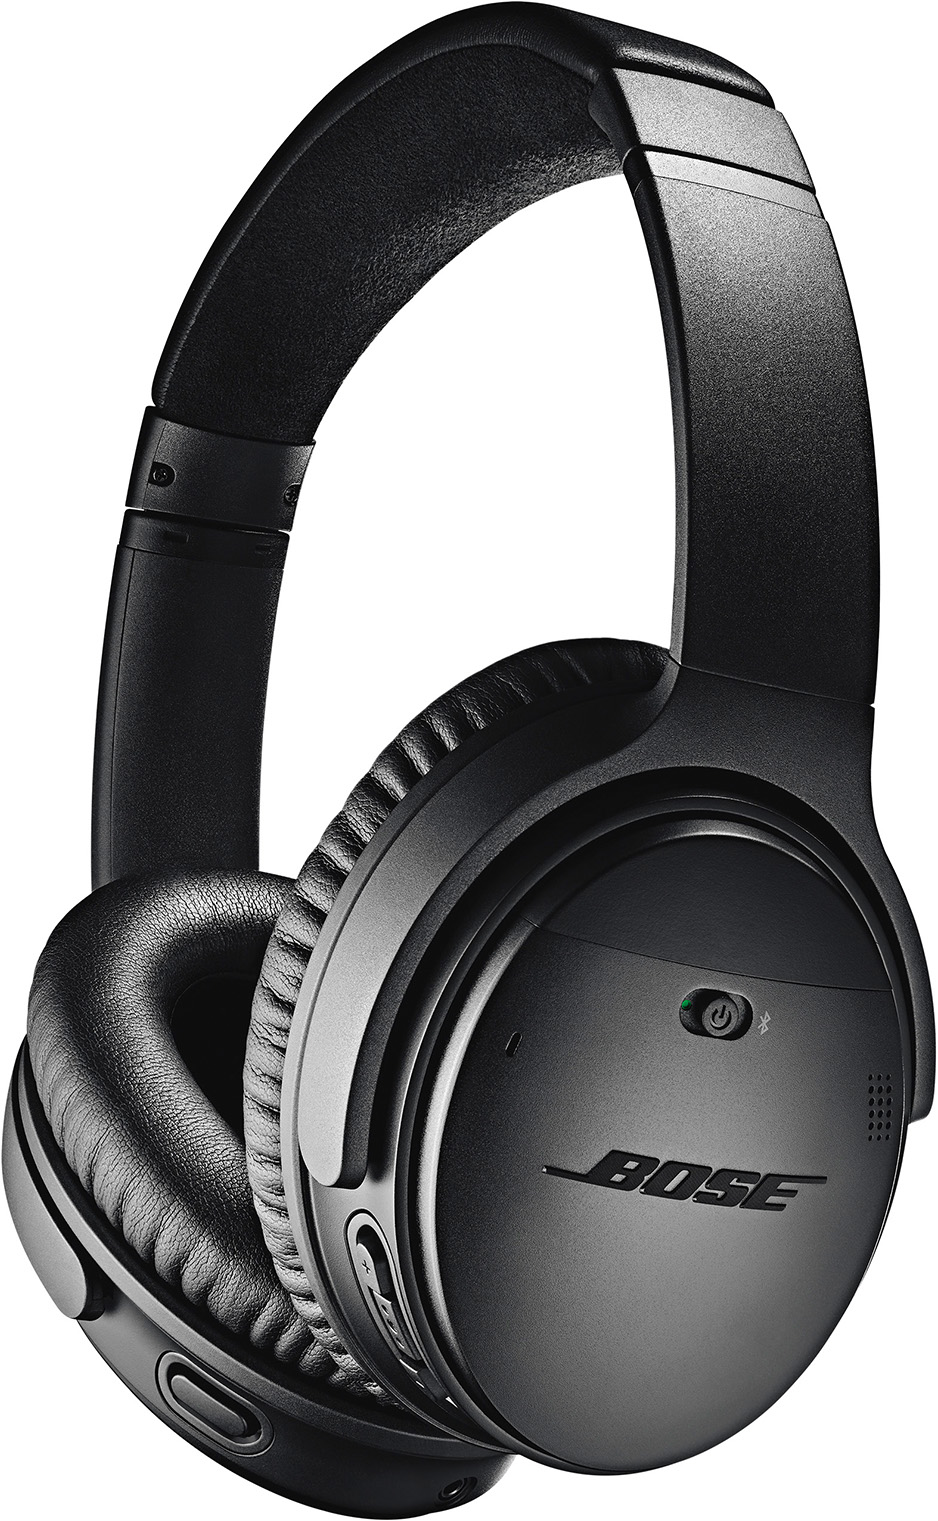 Buy Bose QuietComfort 35 II Wireless Headphones - Microsoft Store